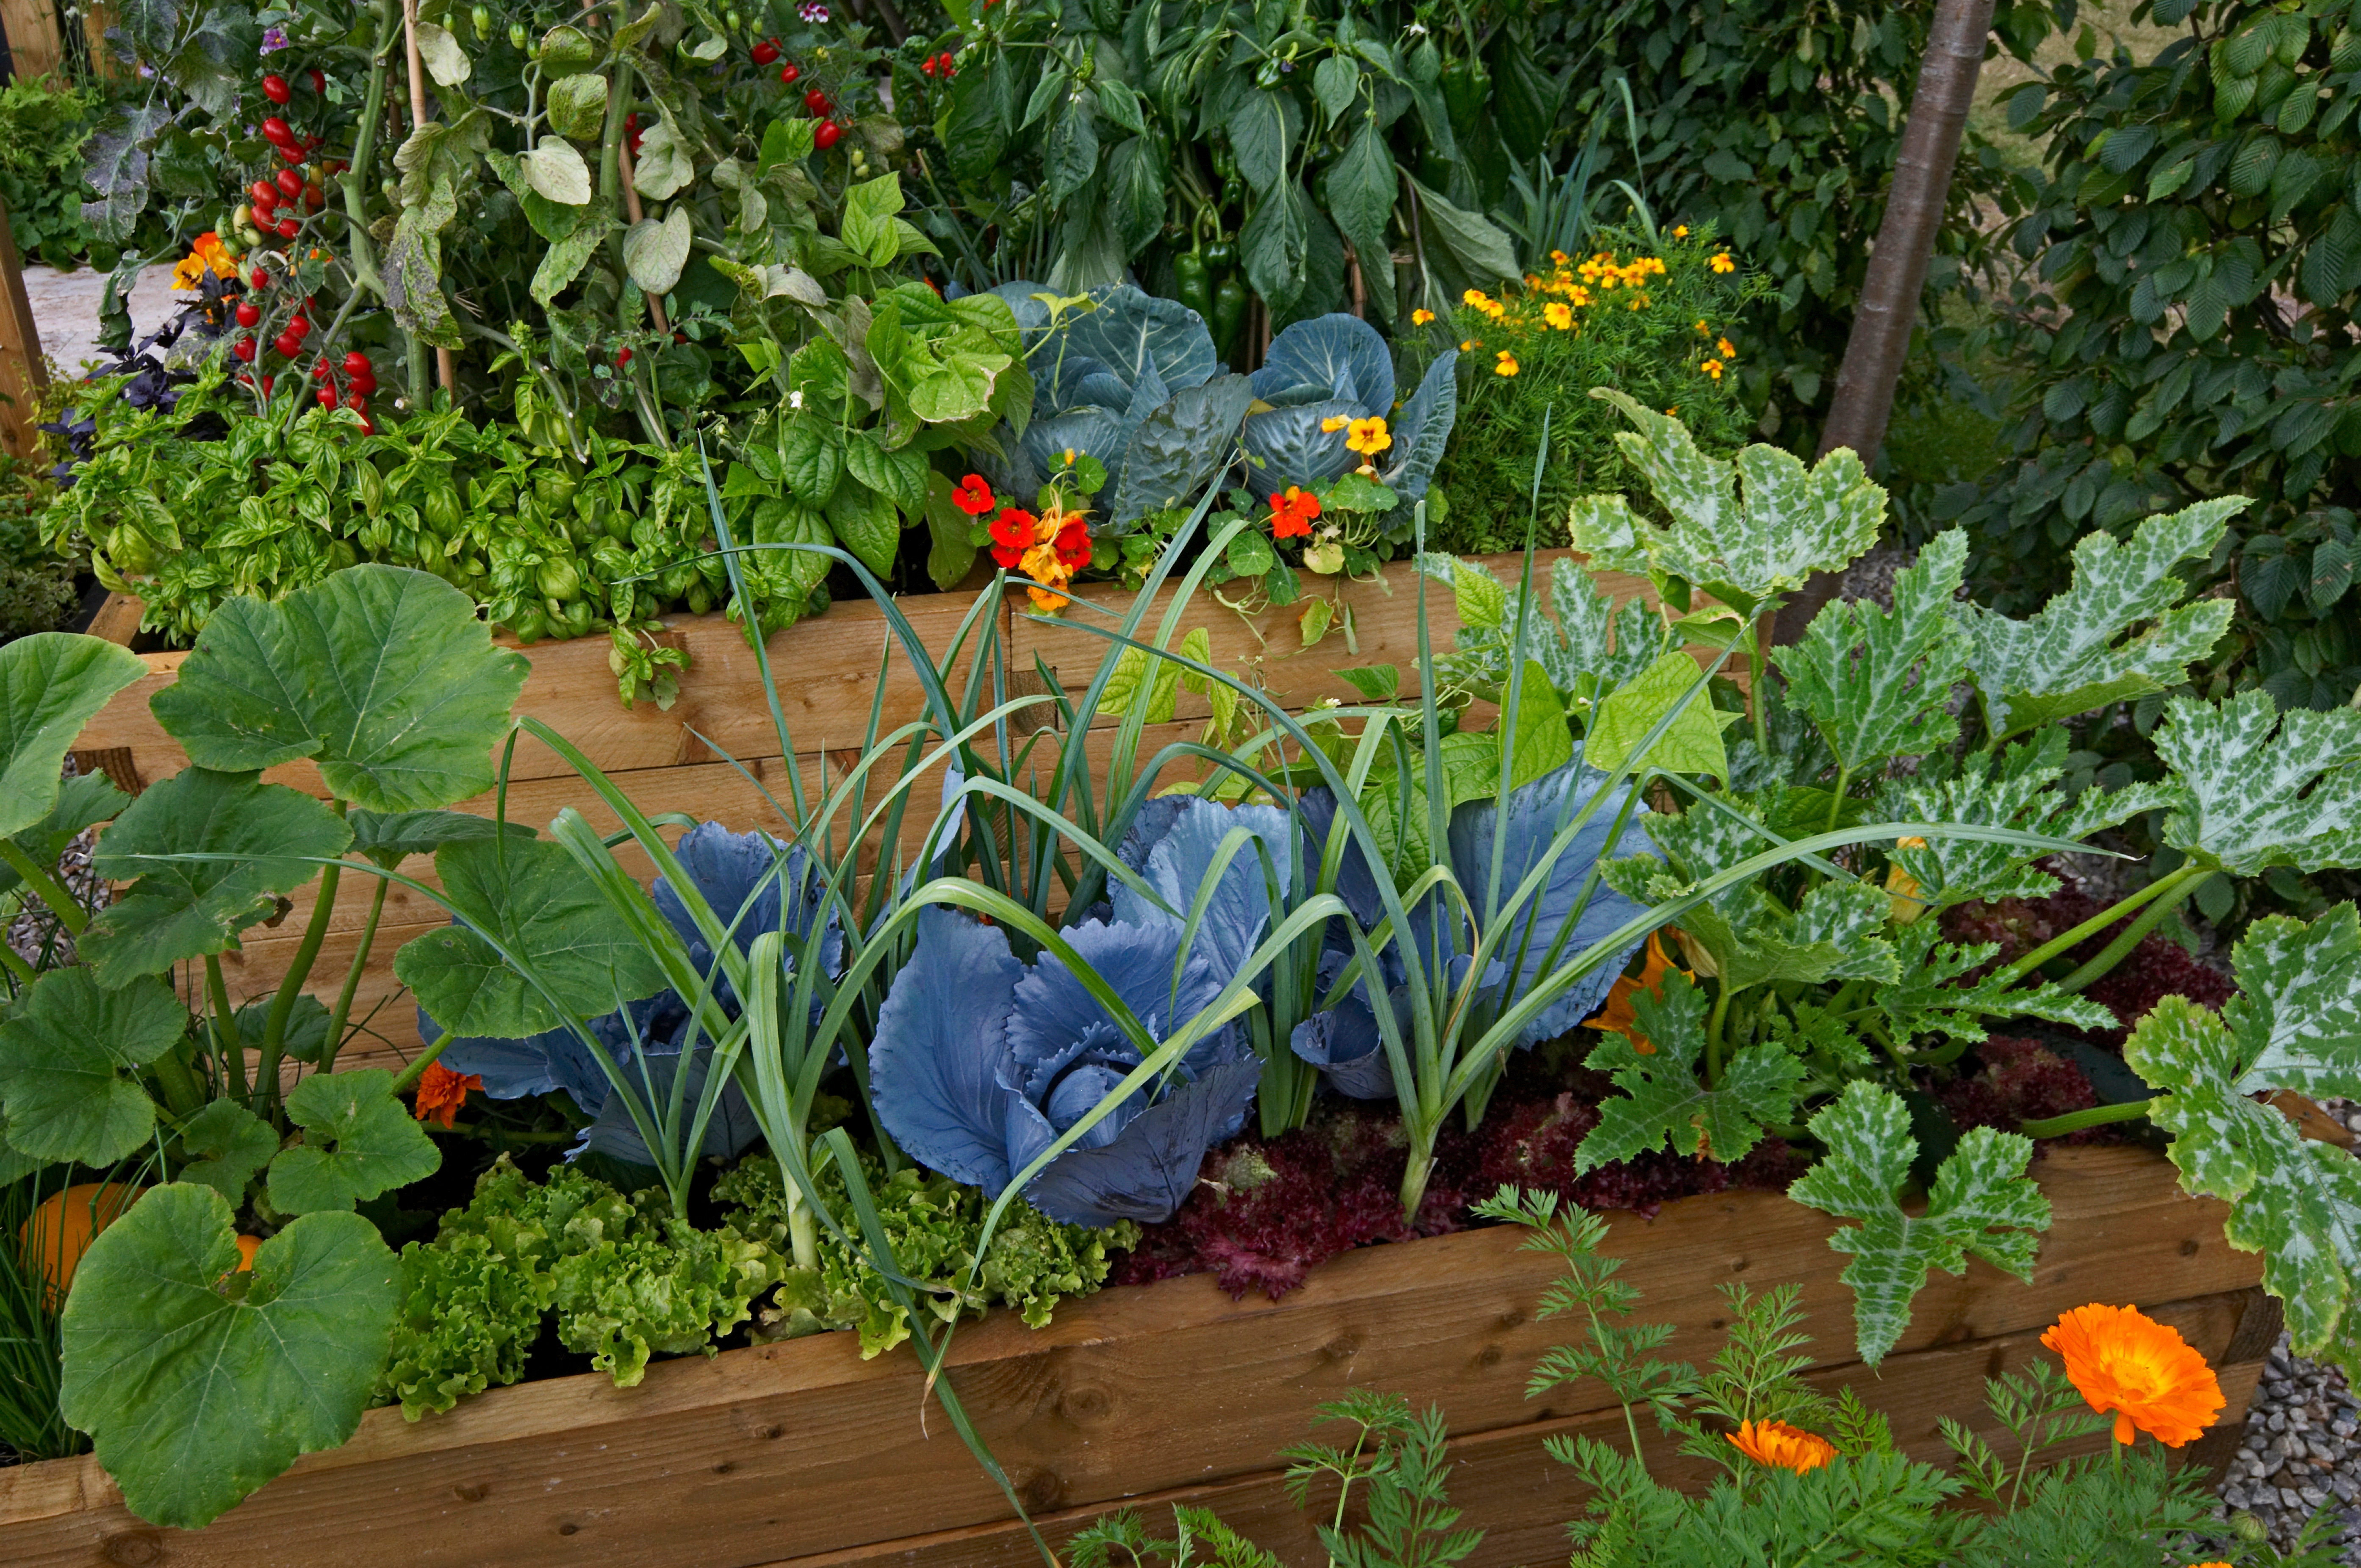 Preventing Garden Pests the Natural Way